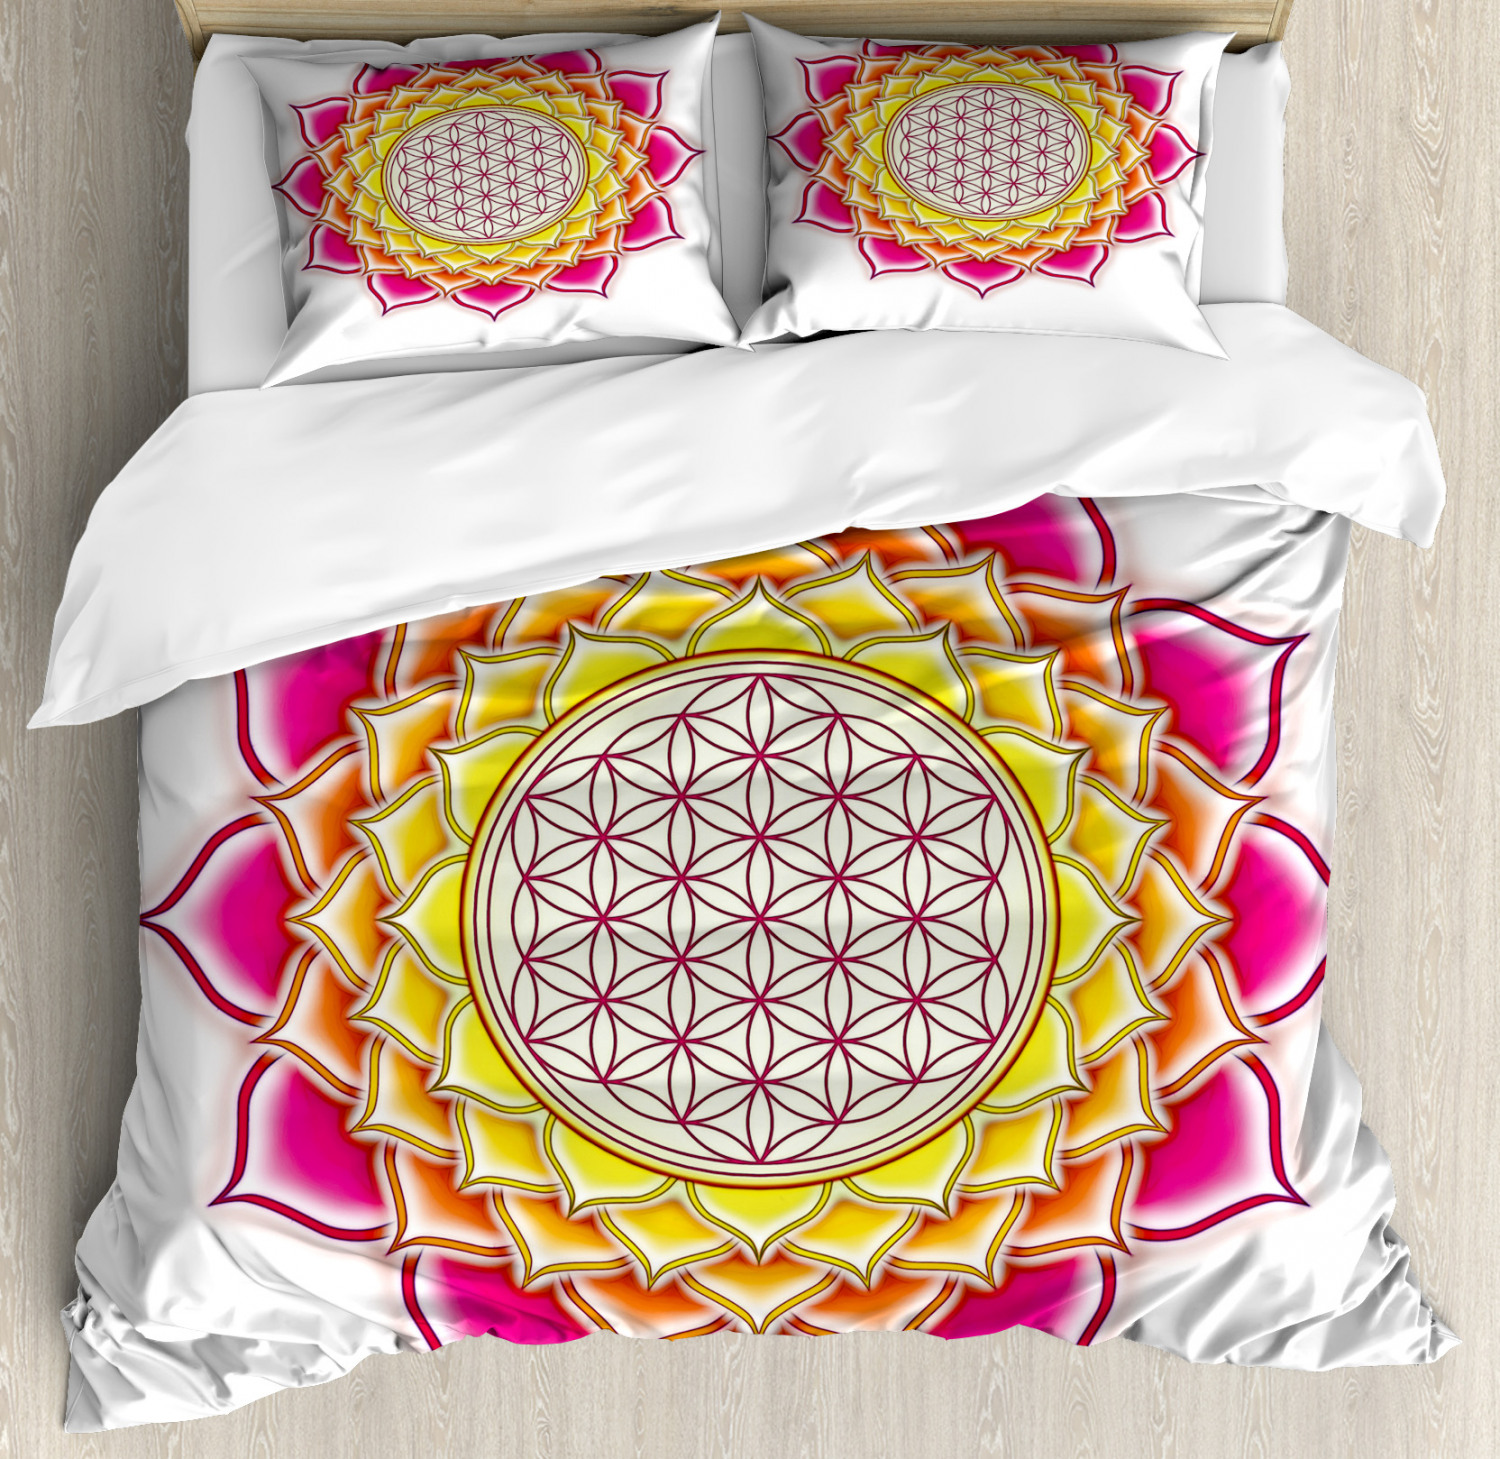 Leaf Duvet Cover Set with Pillow Shams Flower of Life Lotus Vivid Print